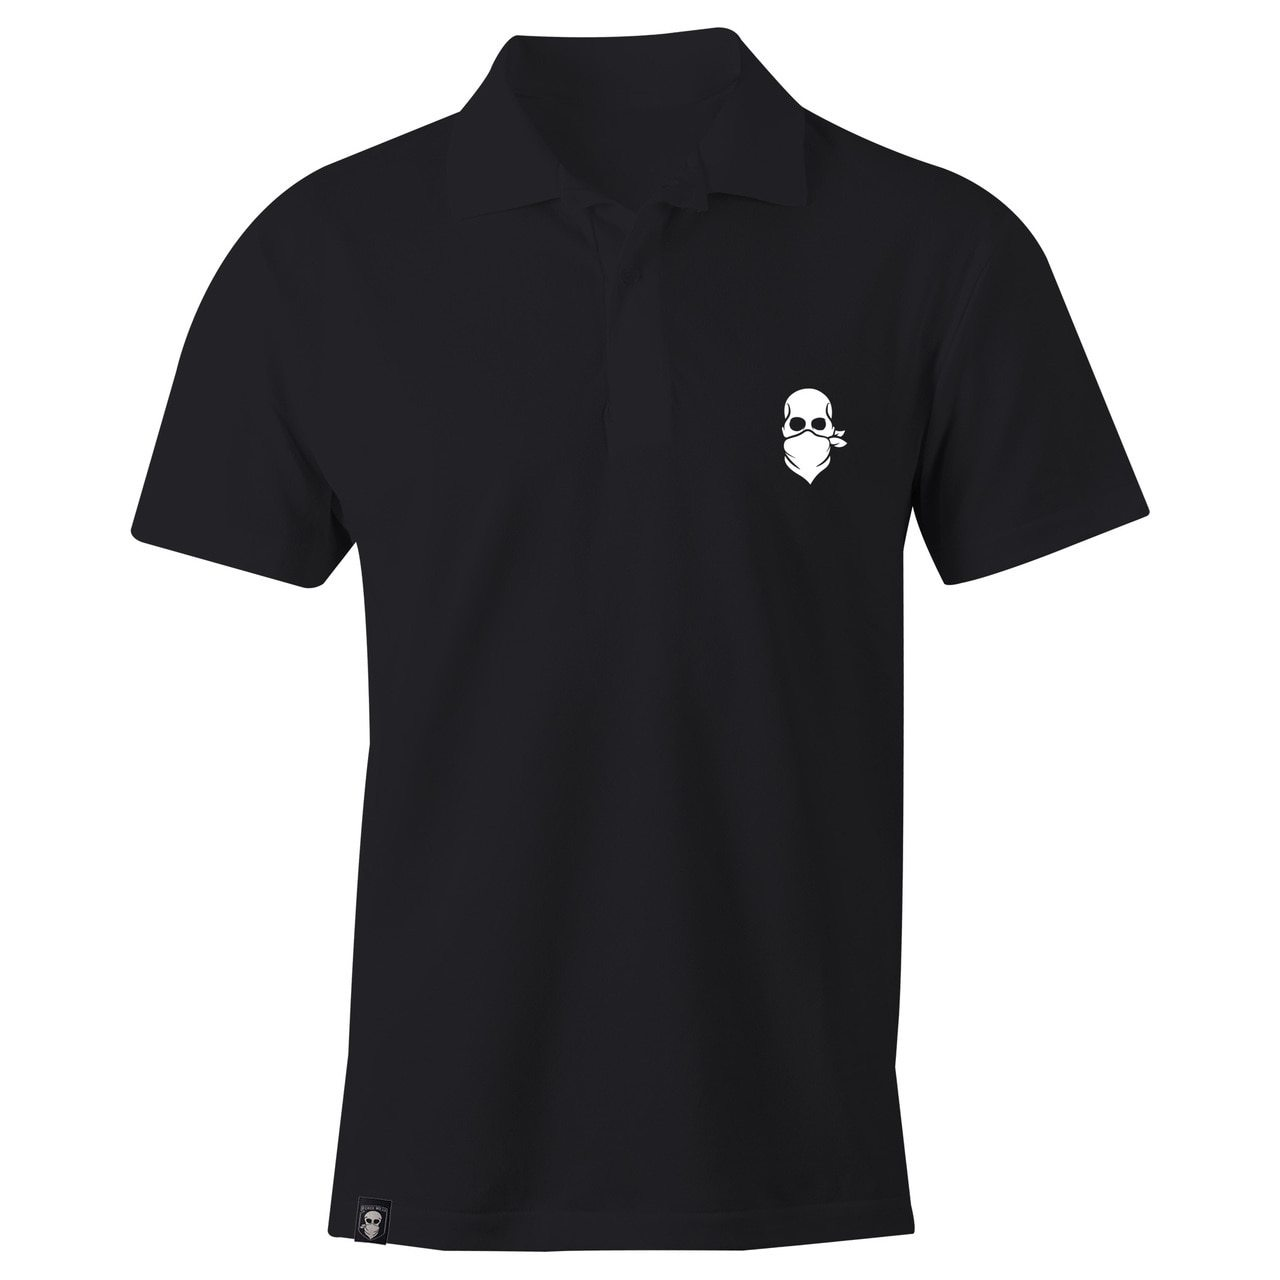 FORCE WEAR POLO BLACK-FORCE WEAR ®-Force Wear HQ